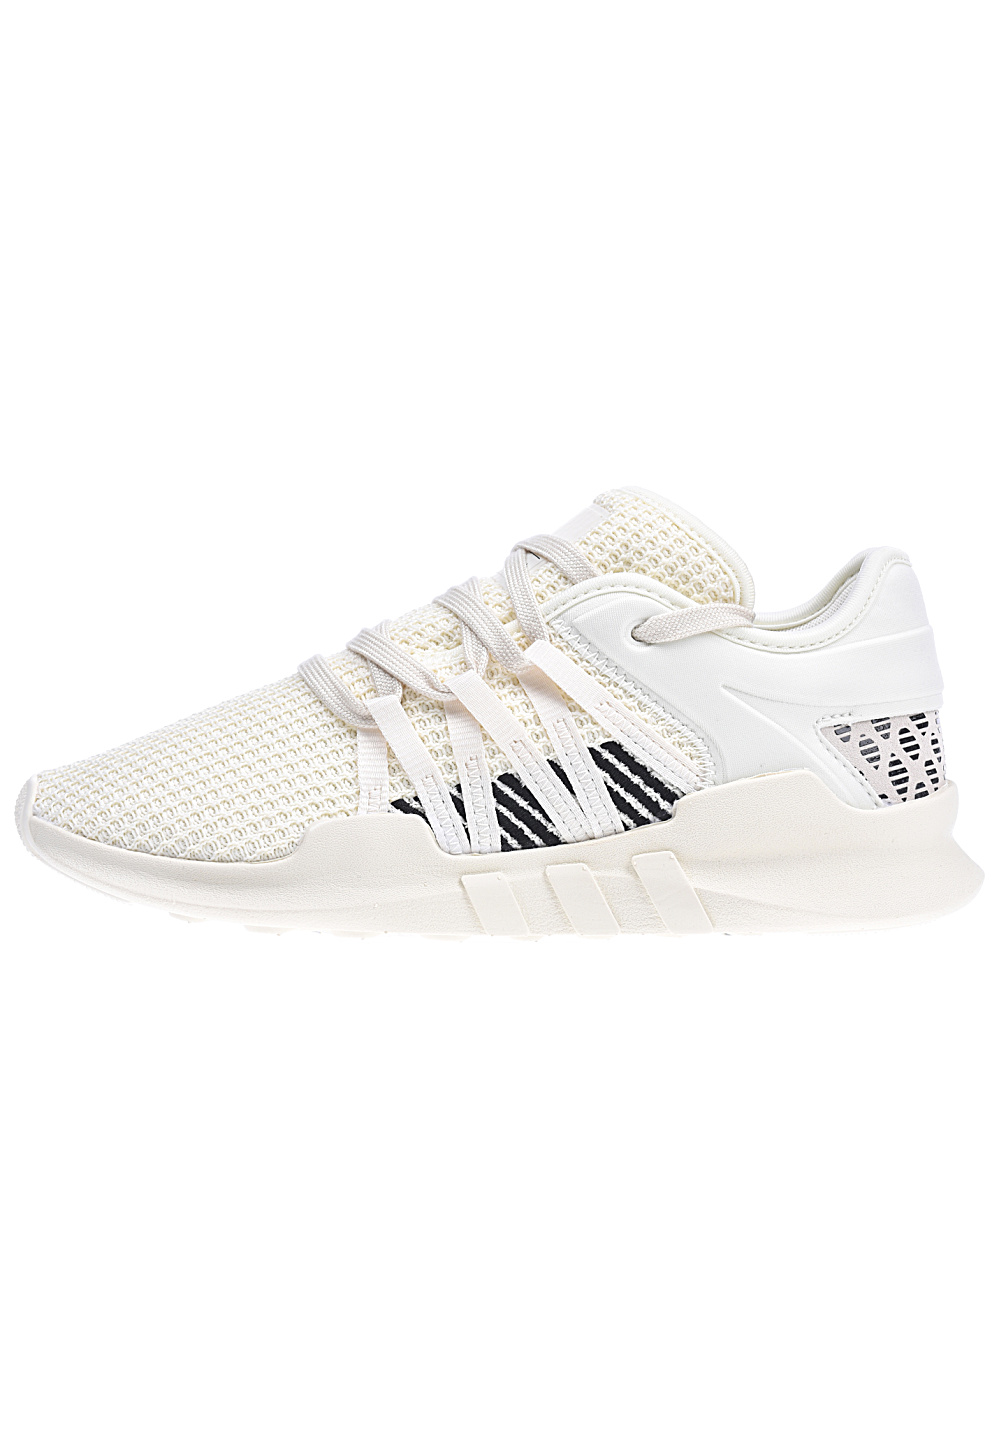 buy online e6d52 ae68d ADIDAS ORIGINALS Eqt Racing Adv - Sneakers for Women - White